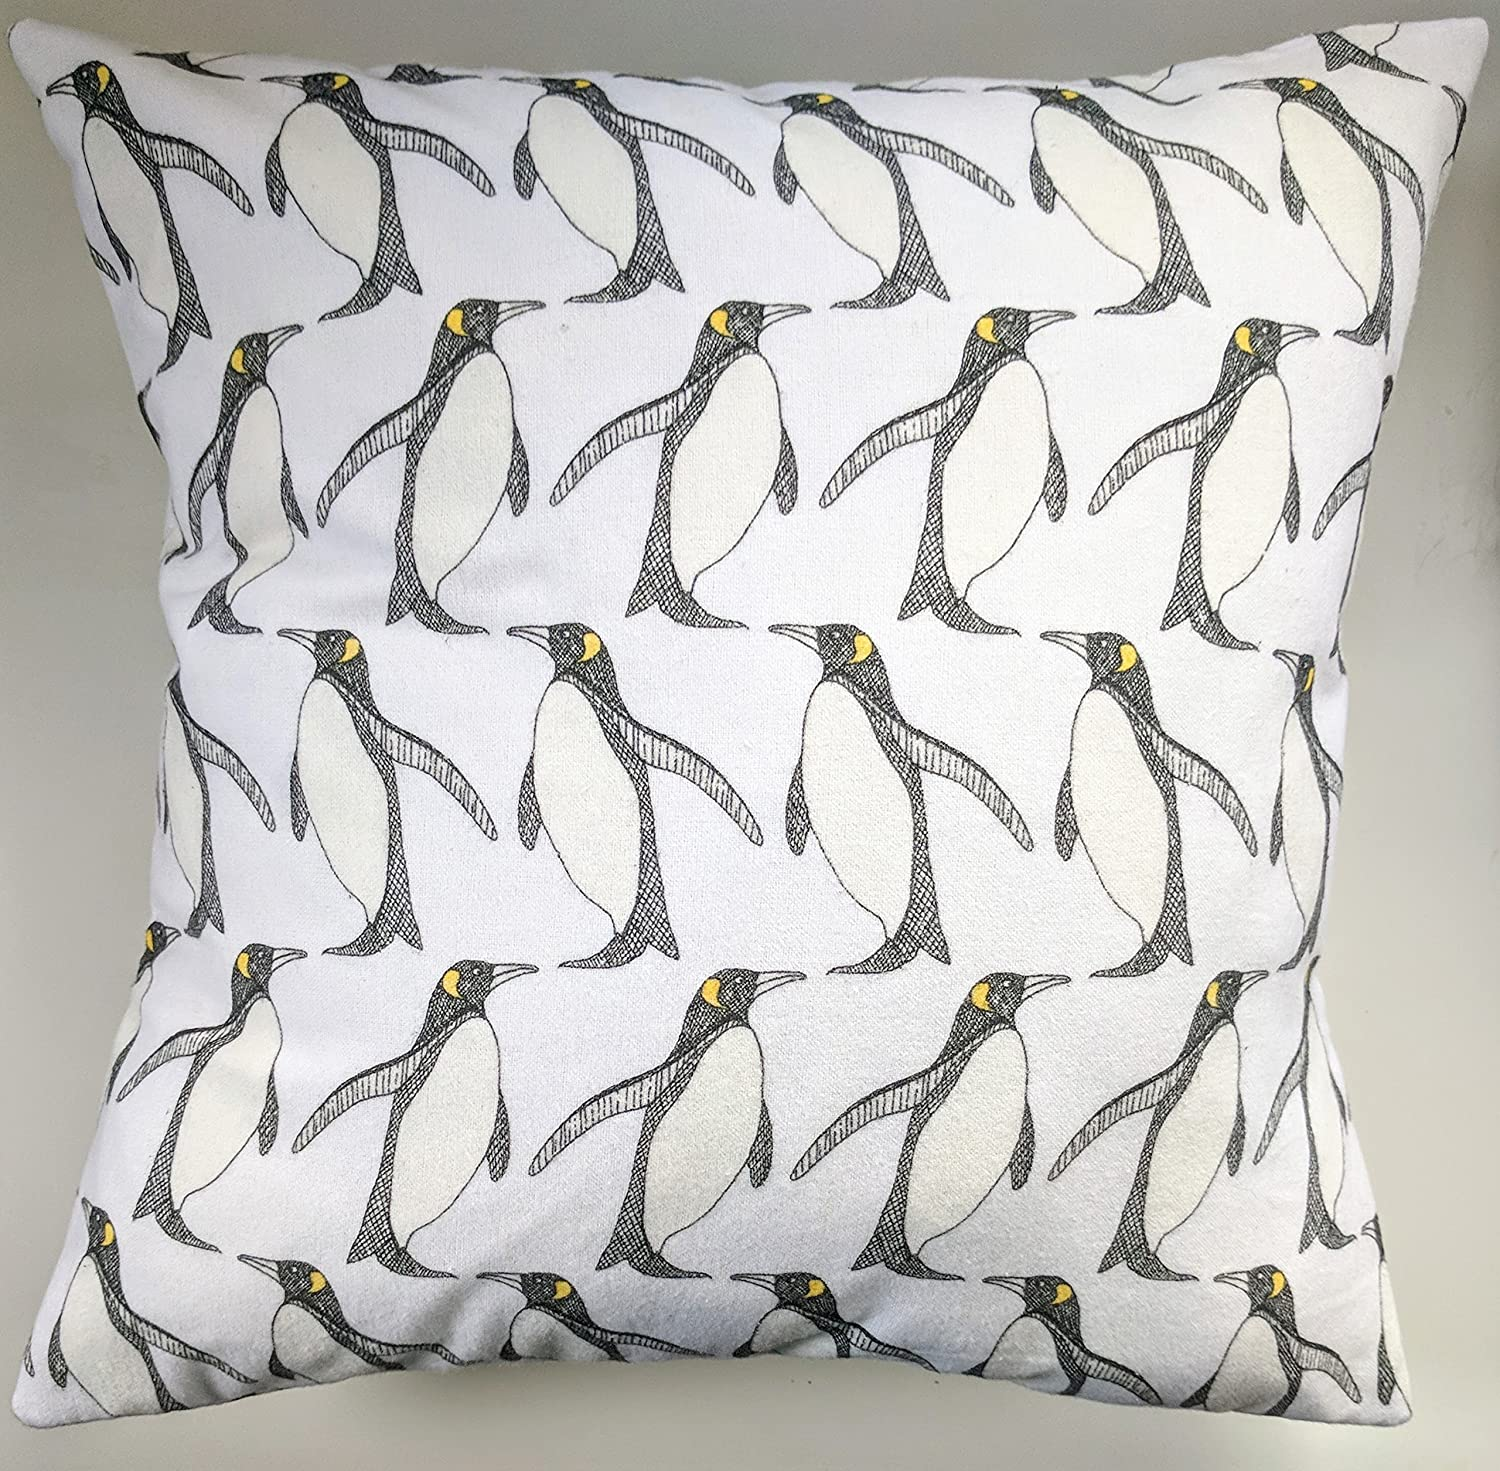 Cushion Cover in White Penguins Brushed Cotton 16'